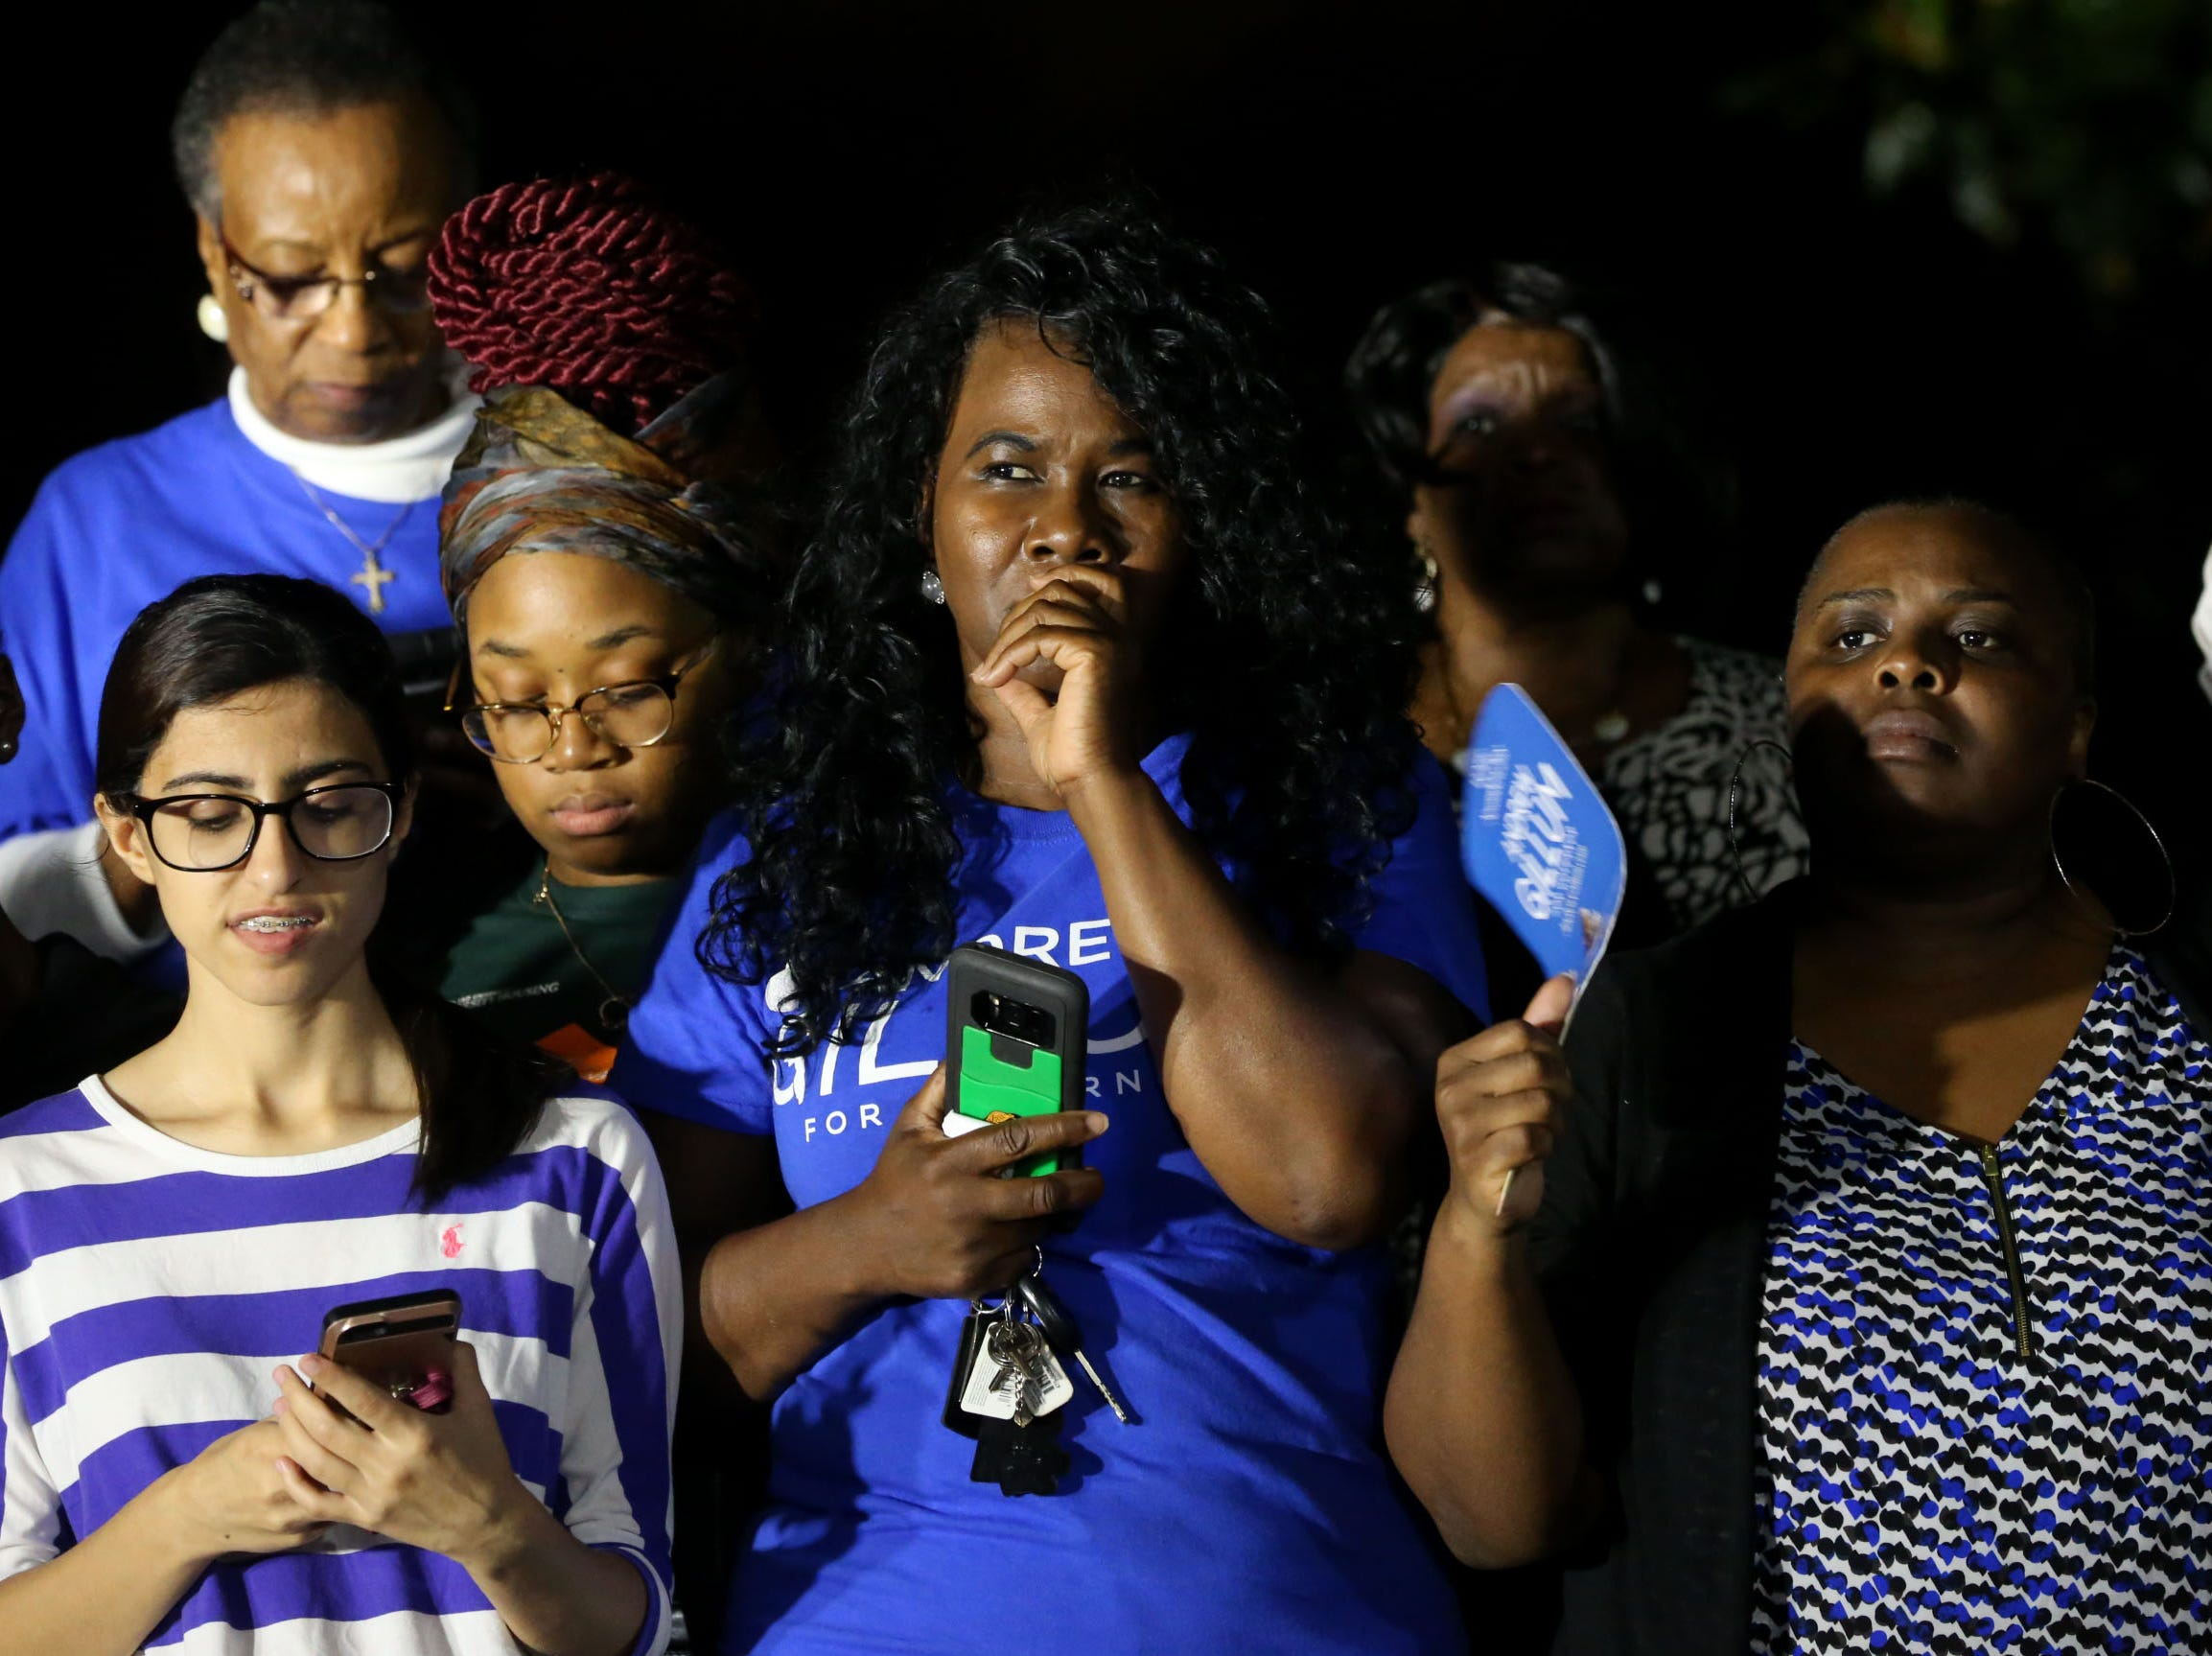 Supporters of Andrew Gillum begin to feel discouraged as the polls are updated while at Gillum's watch party outside Lee Hall on the Florida A&M campus, on Election night, Tuesday, Nov. 6, 2018.